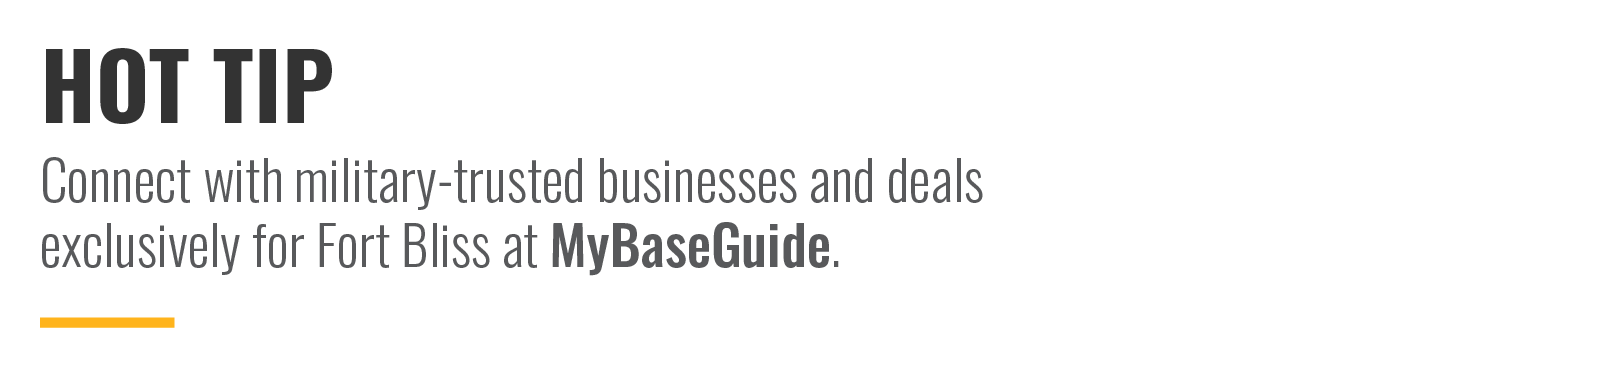 Connect with military-trusted businesses and deals exclusively for Fort Bliss at MyBaseGuide.